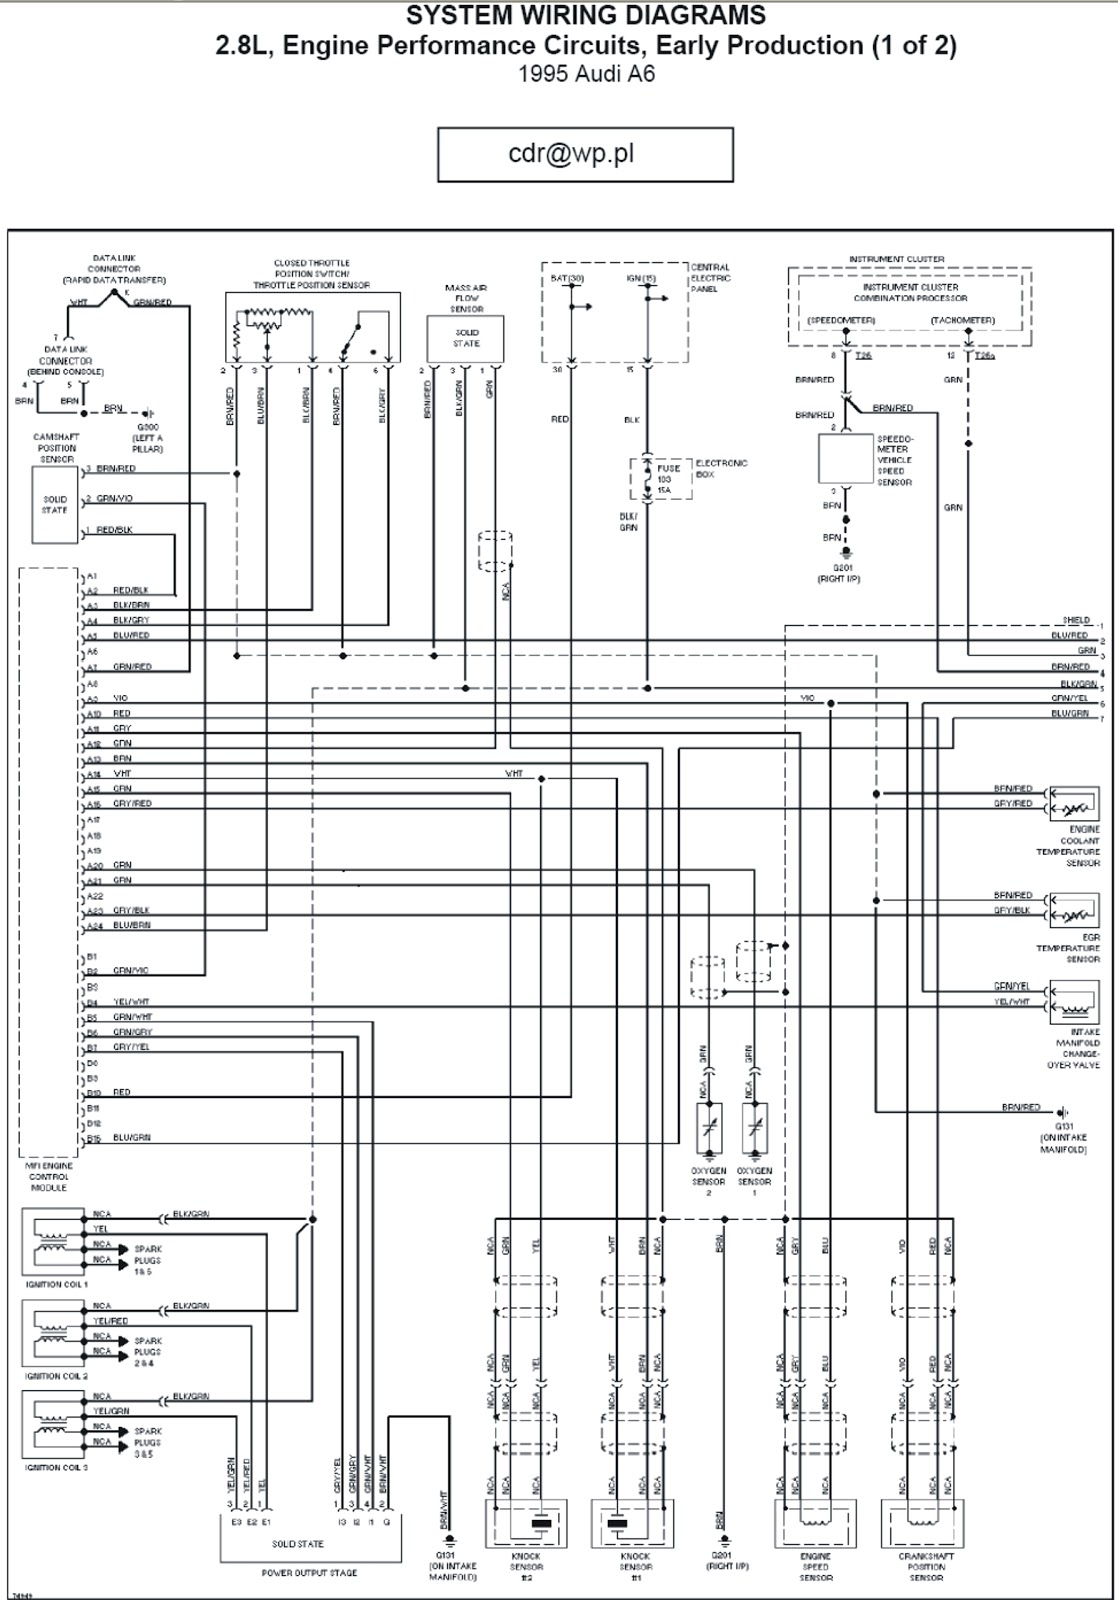 3 Sd Fan Switch Wiring Diagram | 88 Mustang Light Wiring Diagram Wiring Diagram